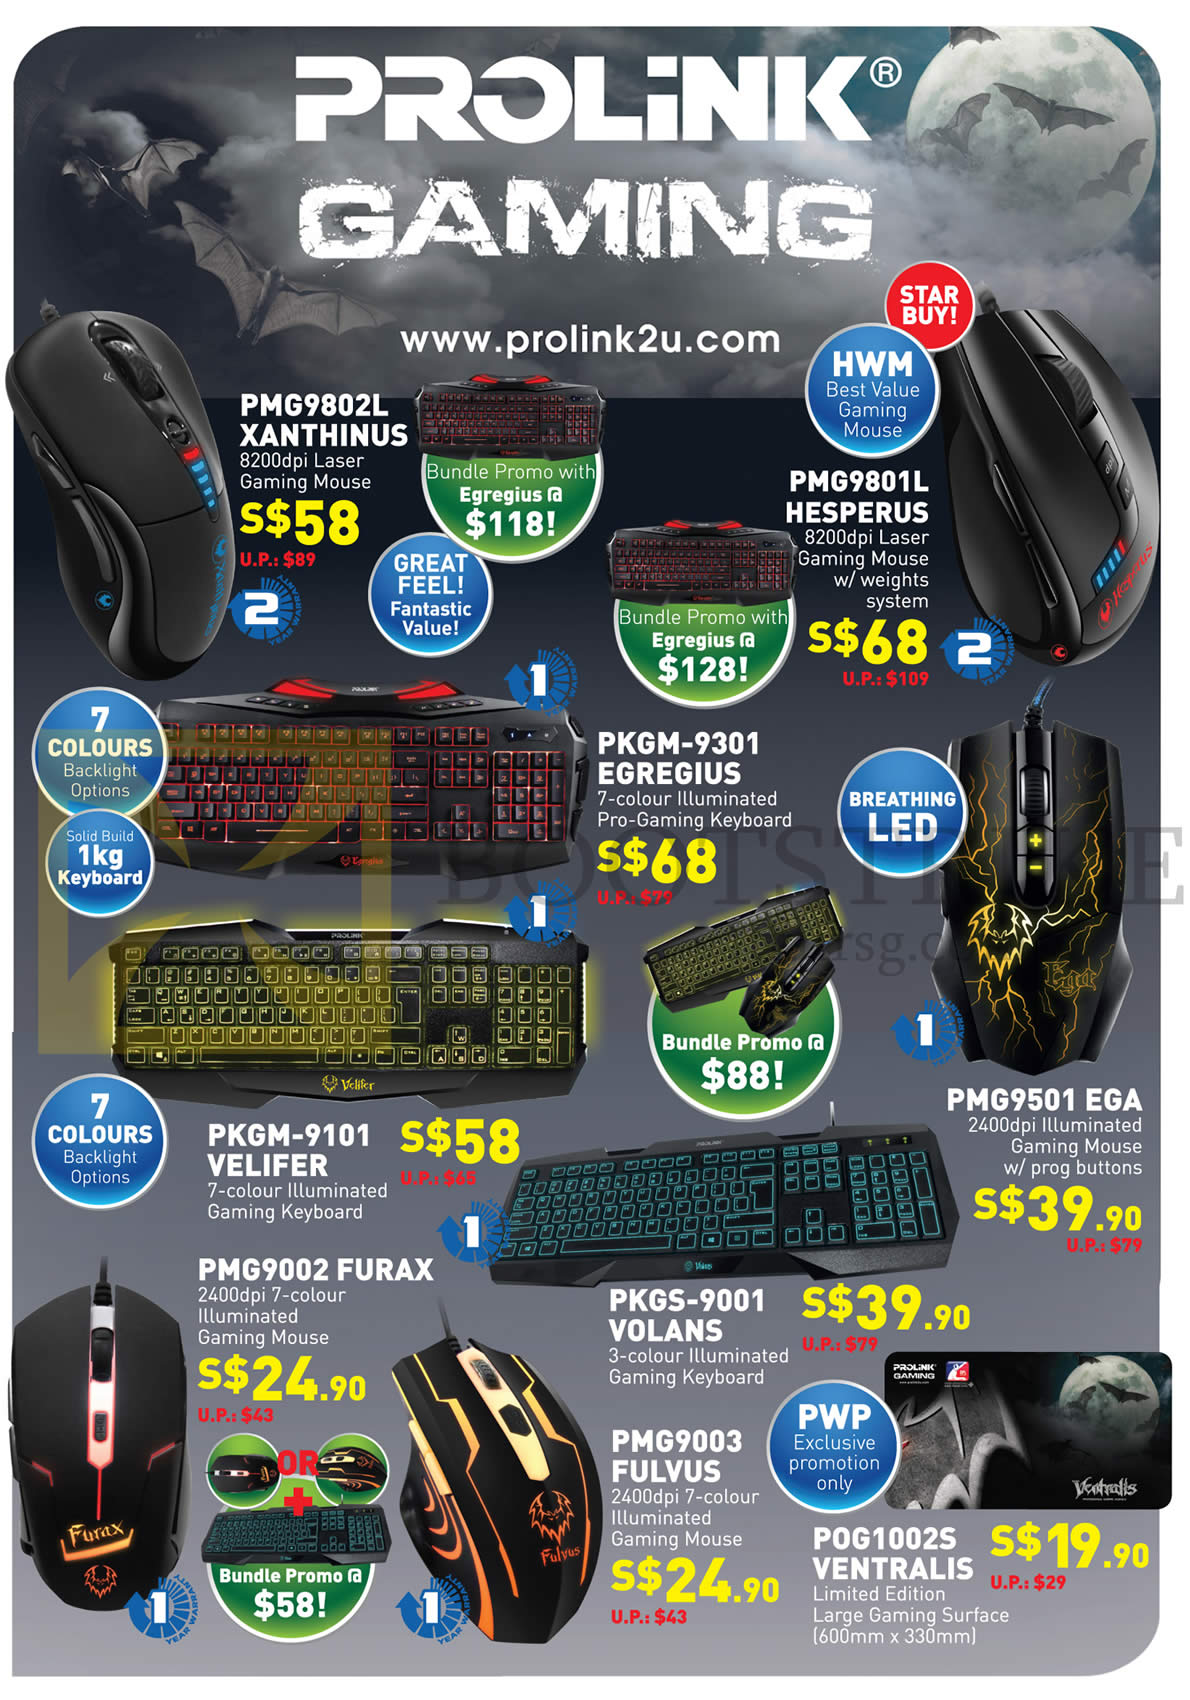 PC SHOW 2015 price list image brochure of Prolink Gaming Nouse, Keyboard, Mousepad, PMG9802L, PMG9801L, PKGM-9301, PKGM-9101 Velifer, PMG9002 Furax